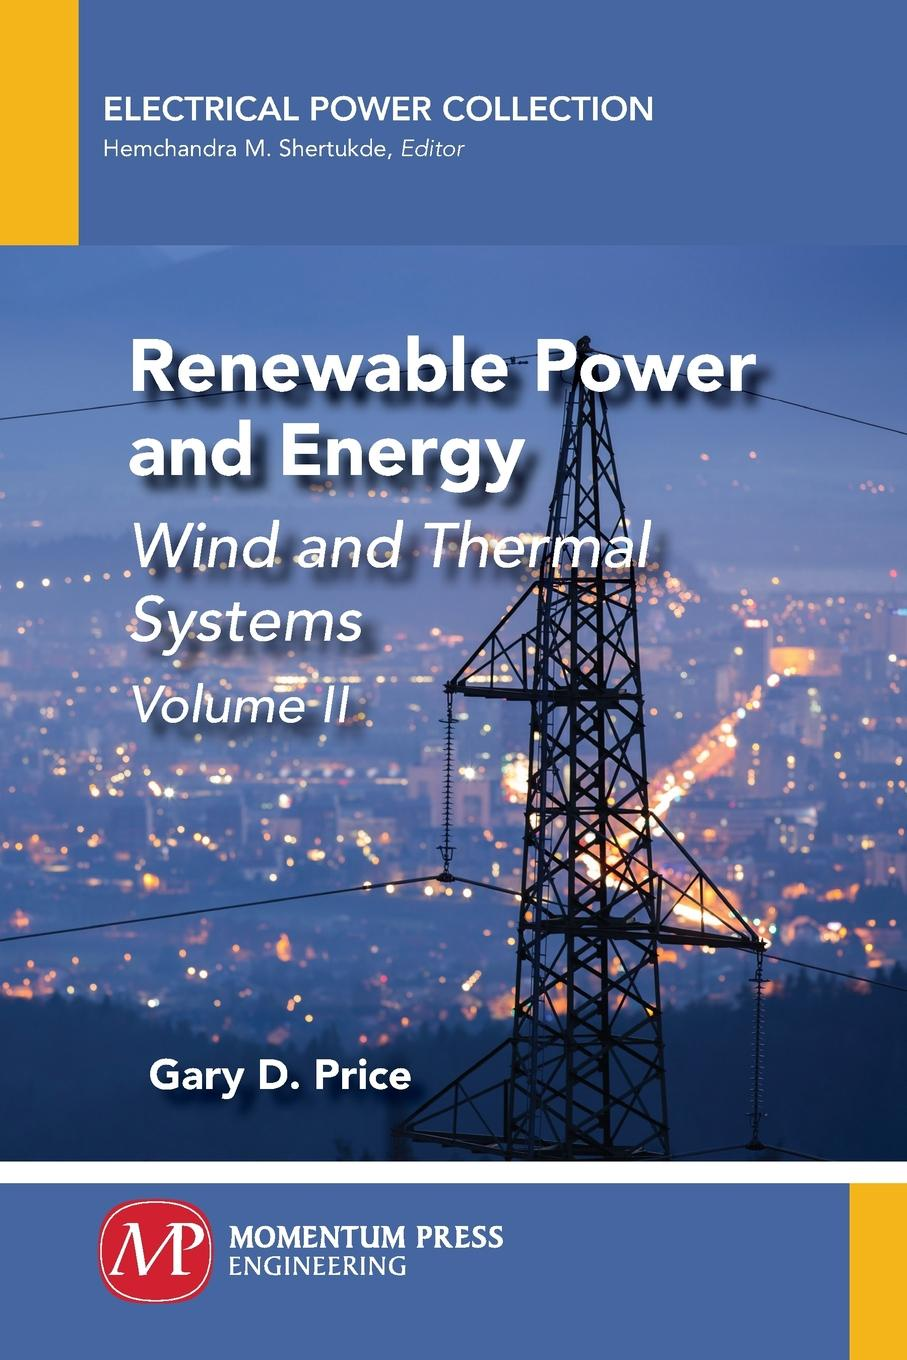 Gary D. Price Renewable Power and Energy, Volume II. Wind and Thermal Systems jumaah raihan sulaiman new technique for maximum power point tracker on photovoltaic systems